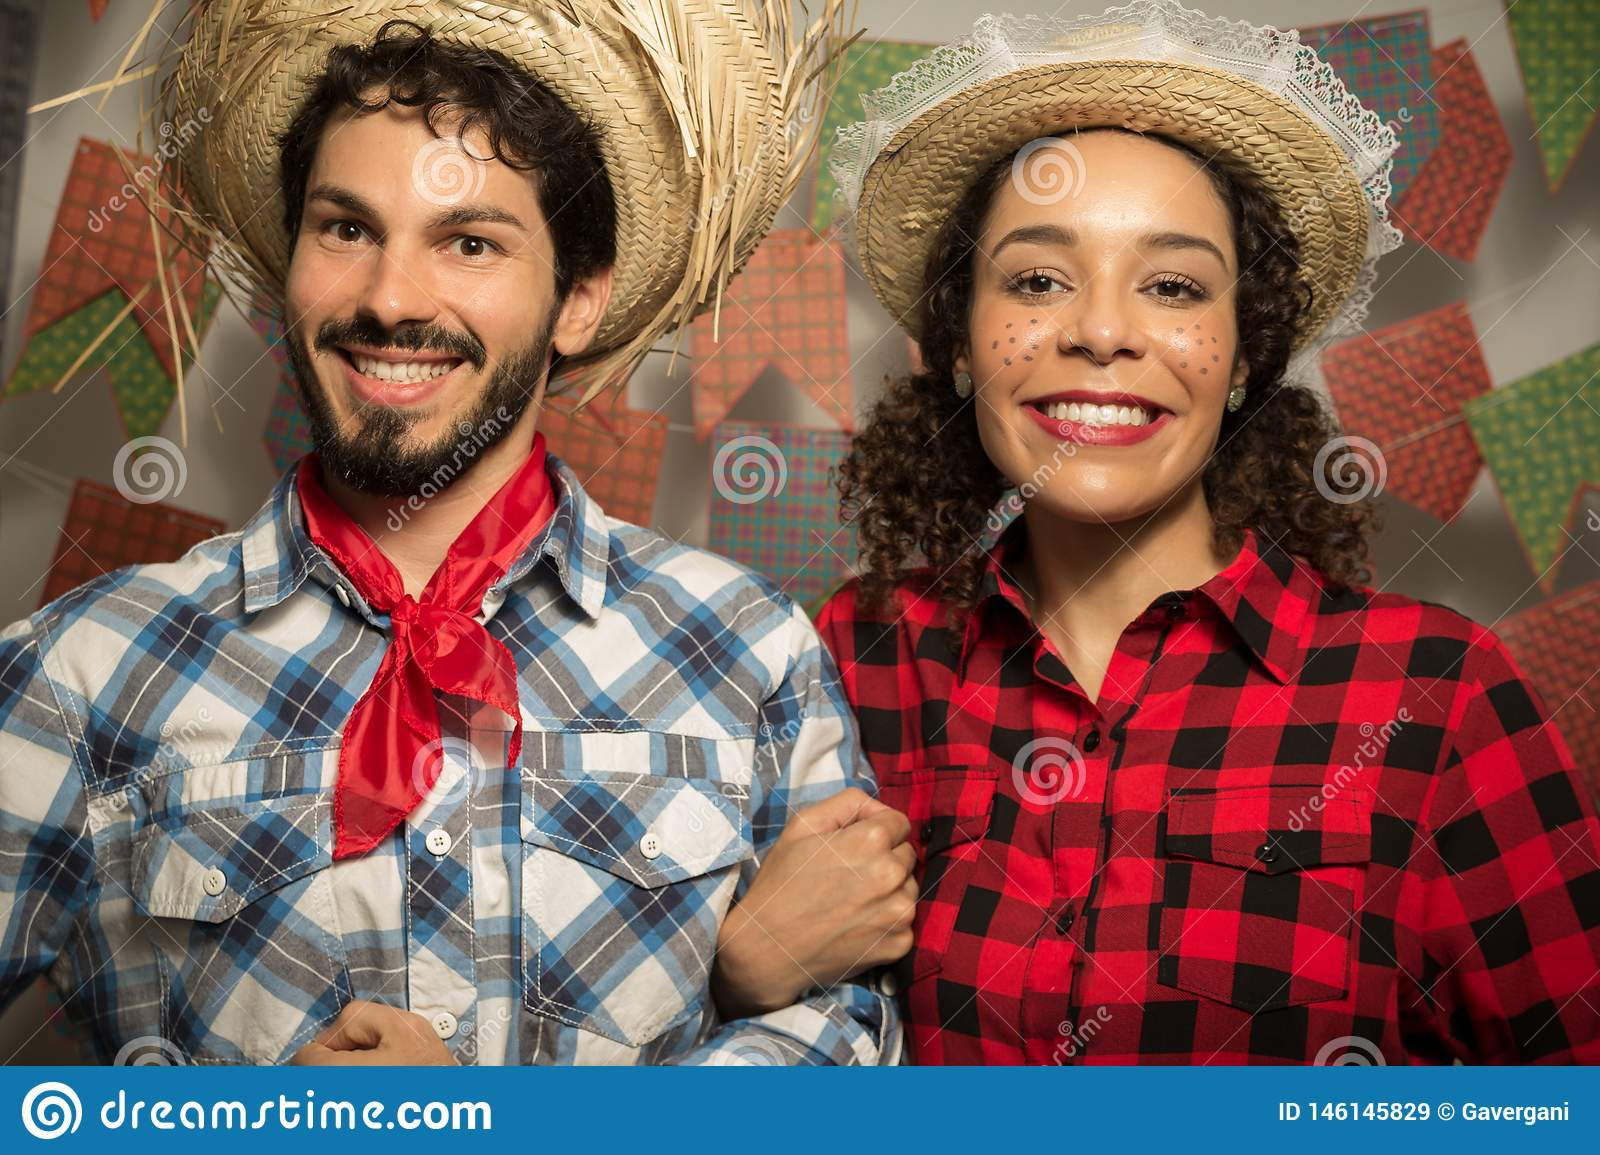 Festa Junina is June party in Brazil. Beautiful couple is holding hands and posing for the photo. They are wearing straw hats and